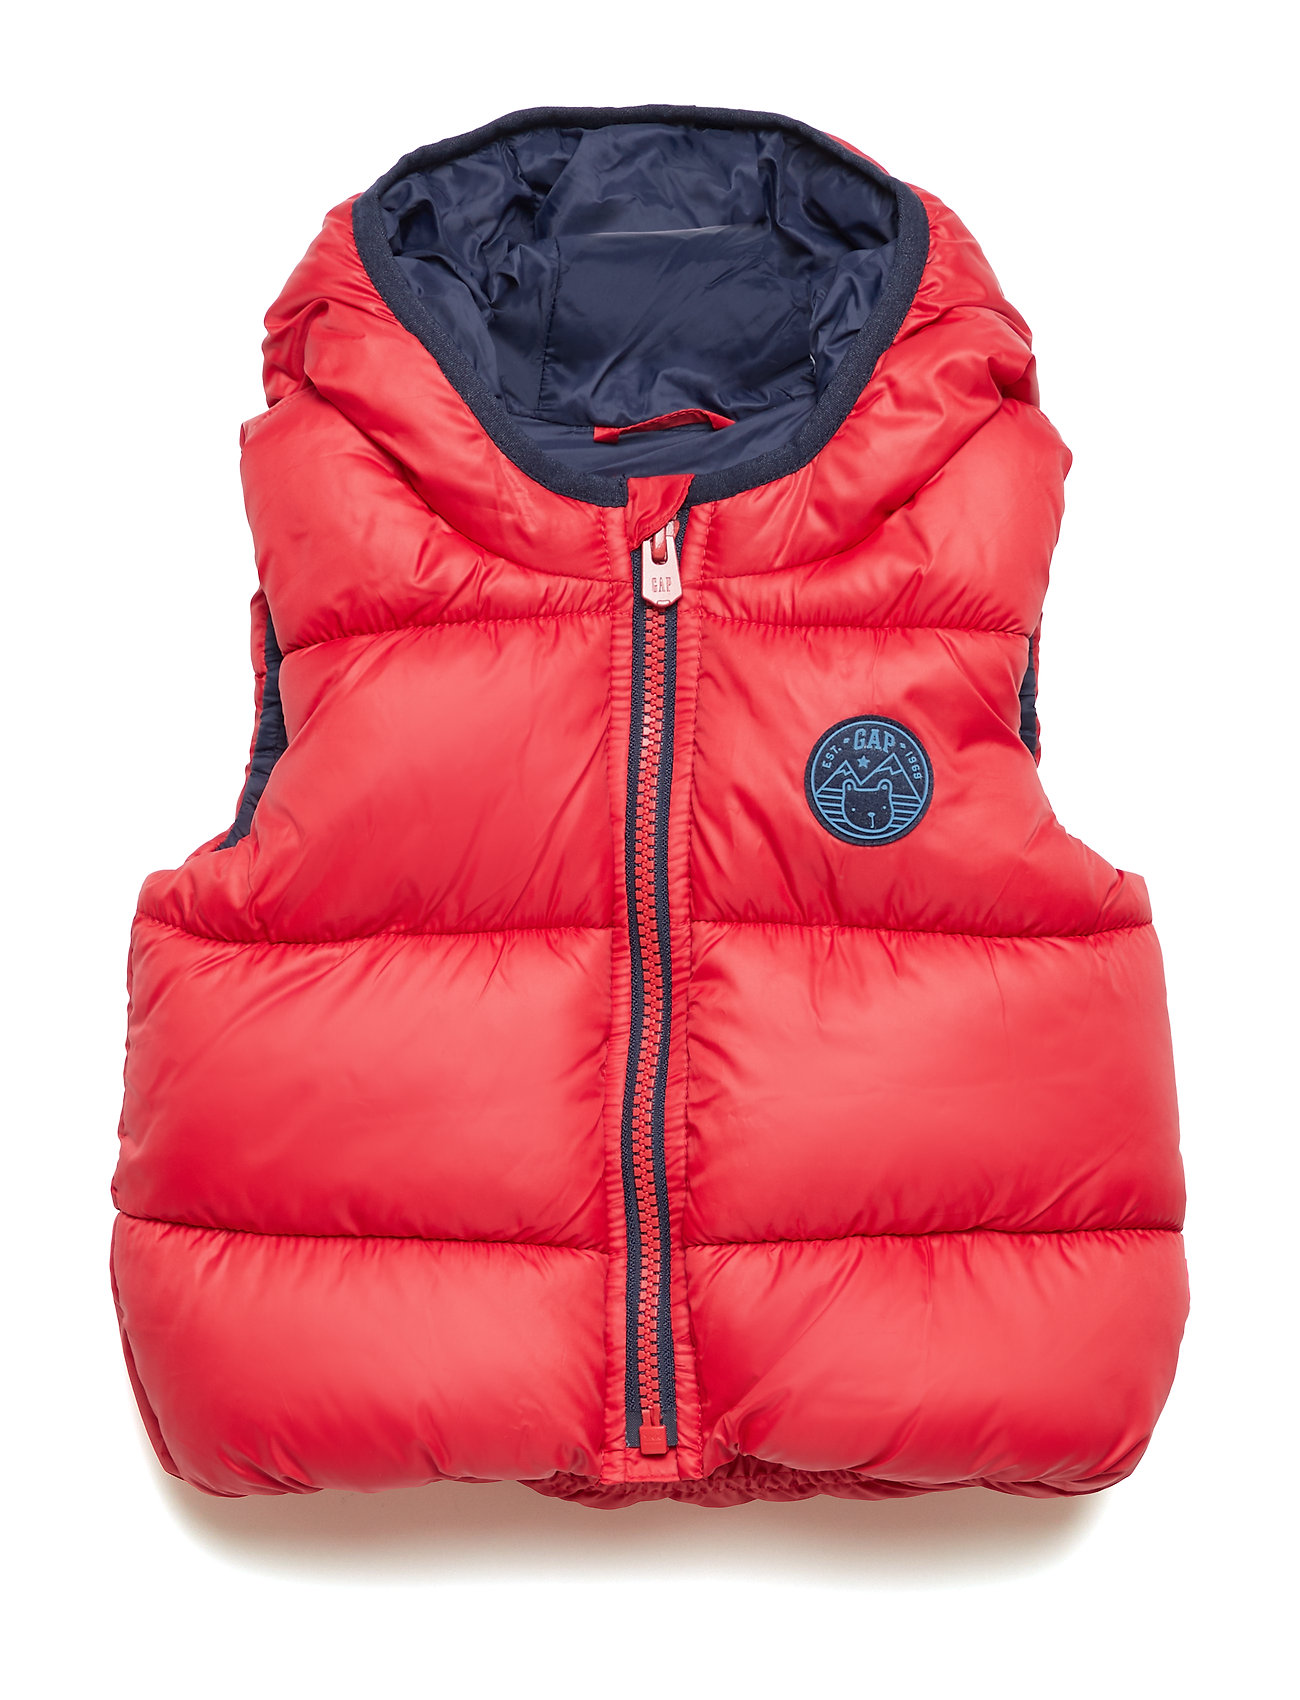 GAP WARMEST VEST - MODERN RED 2